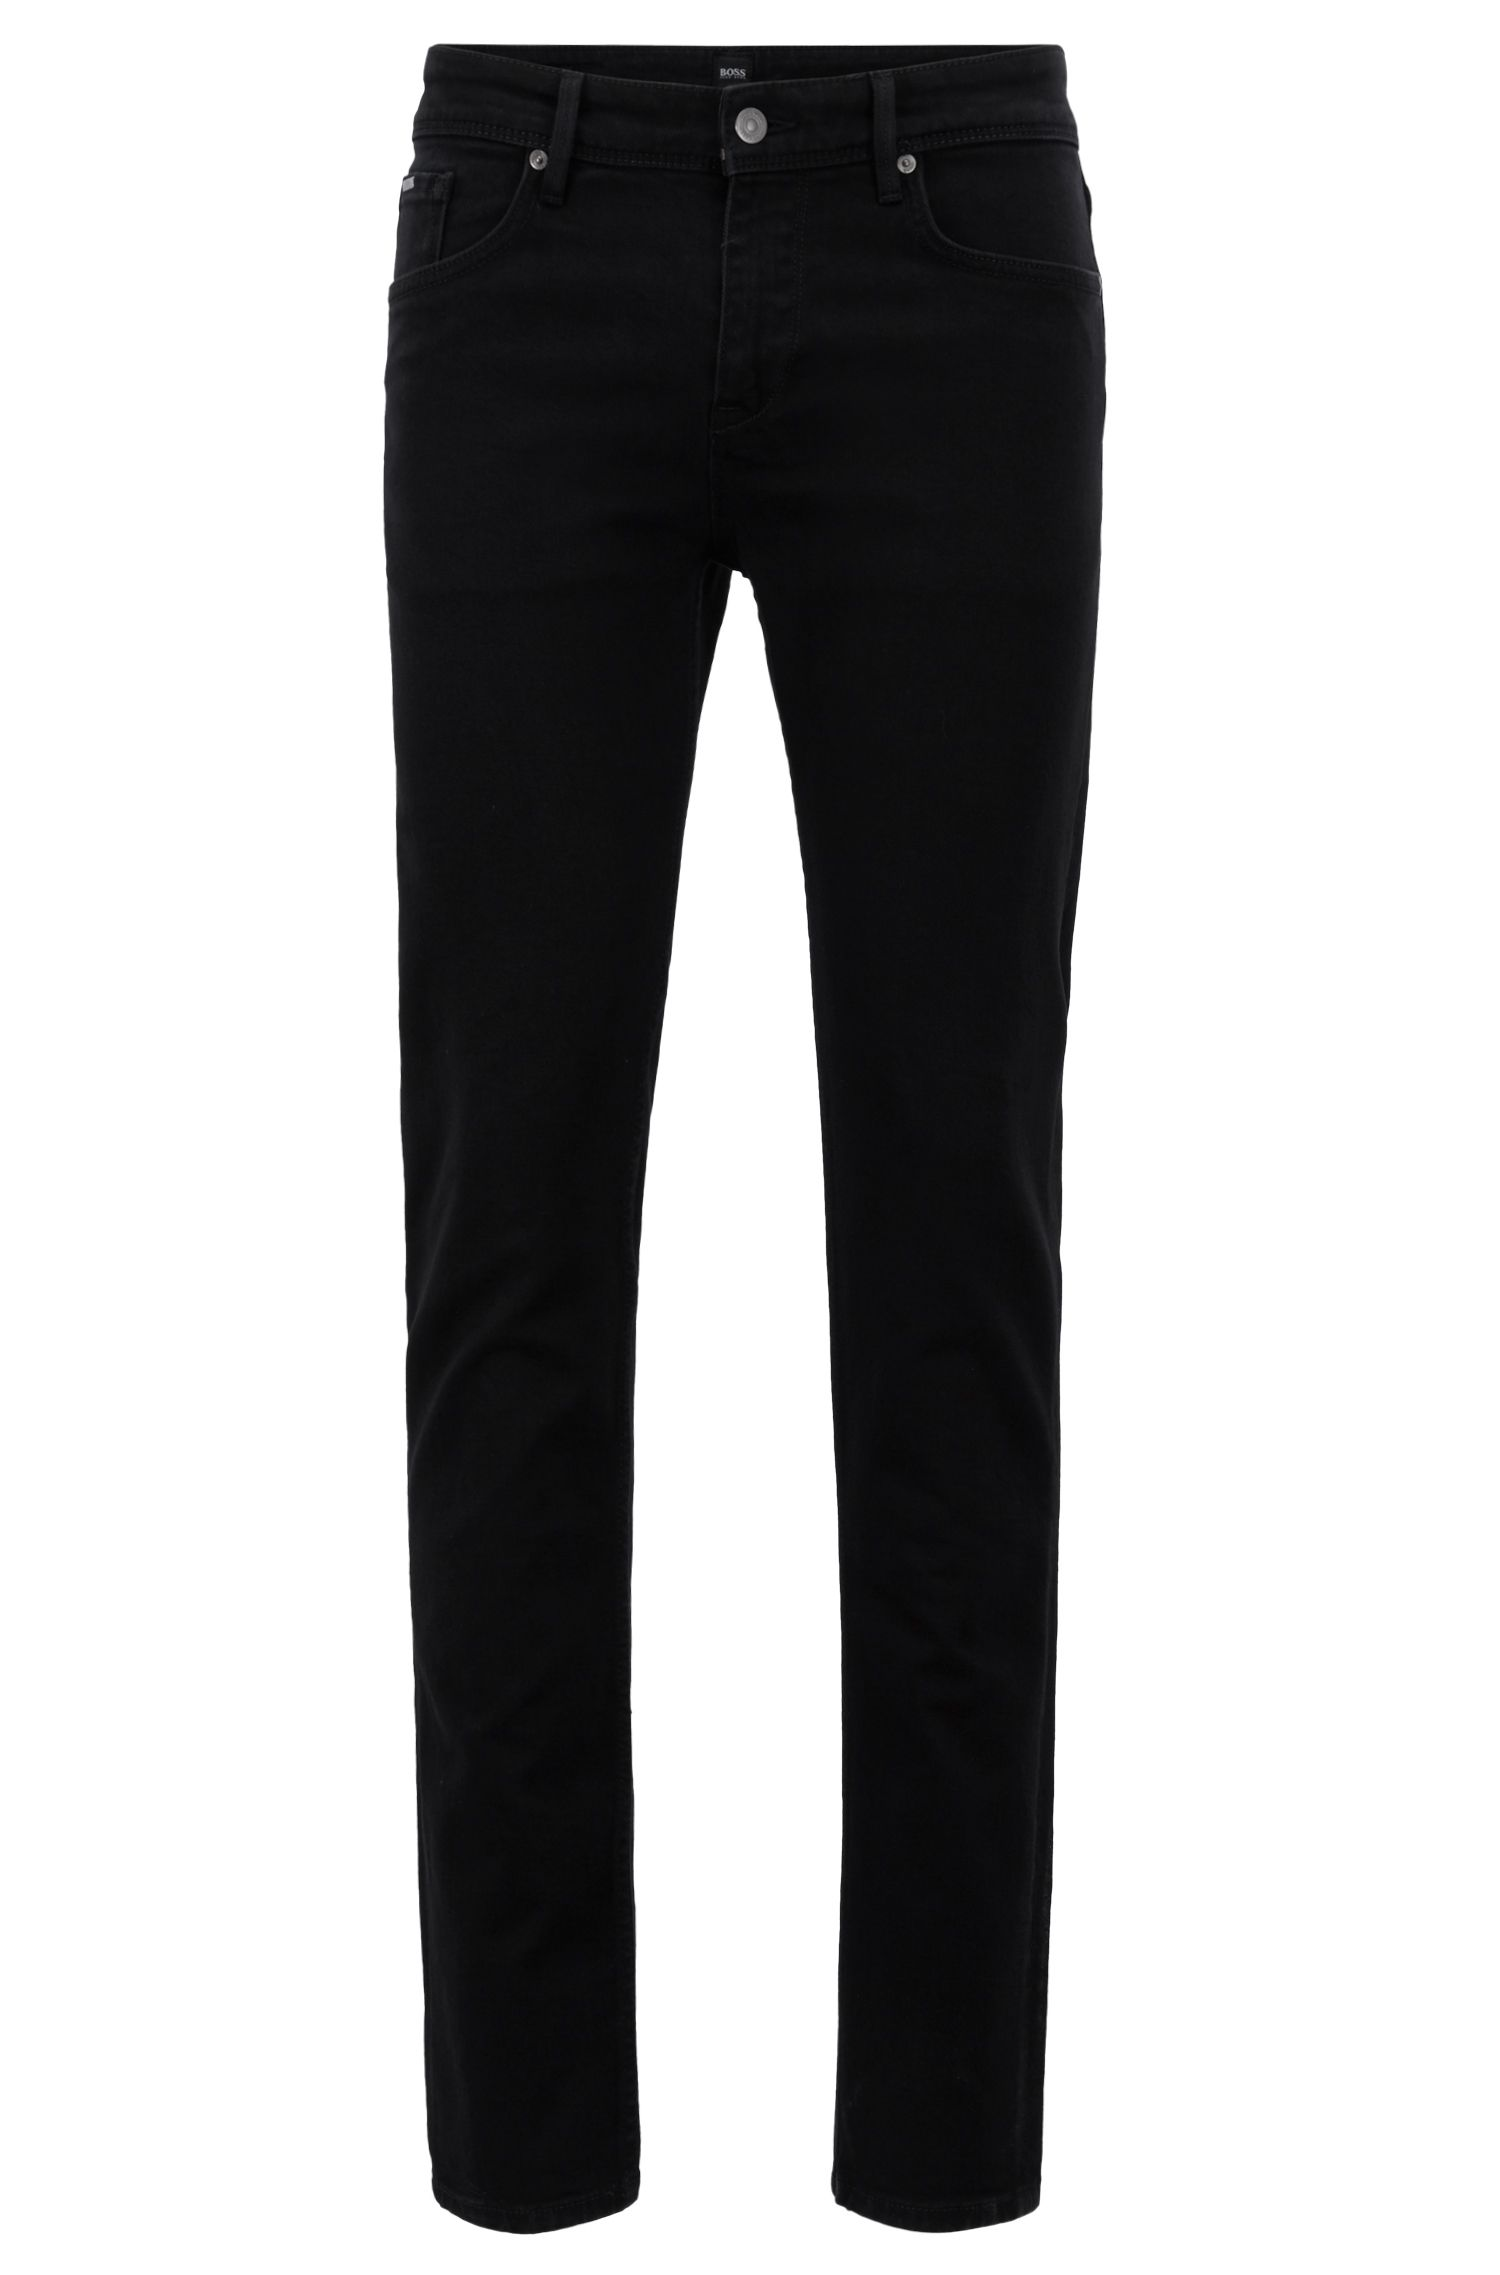 Jean Extra Slim Fit noir en denim stretch italien, Noir